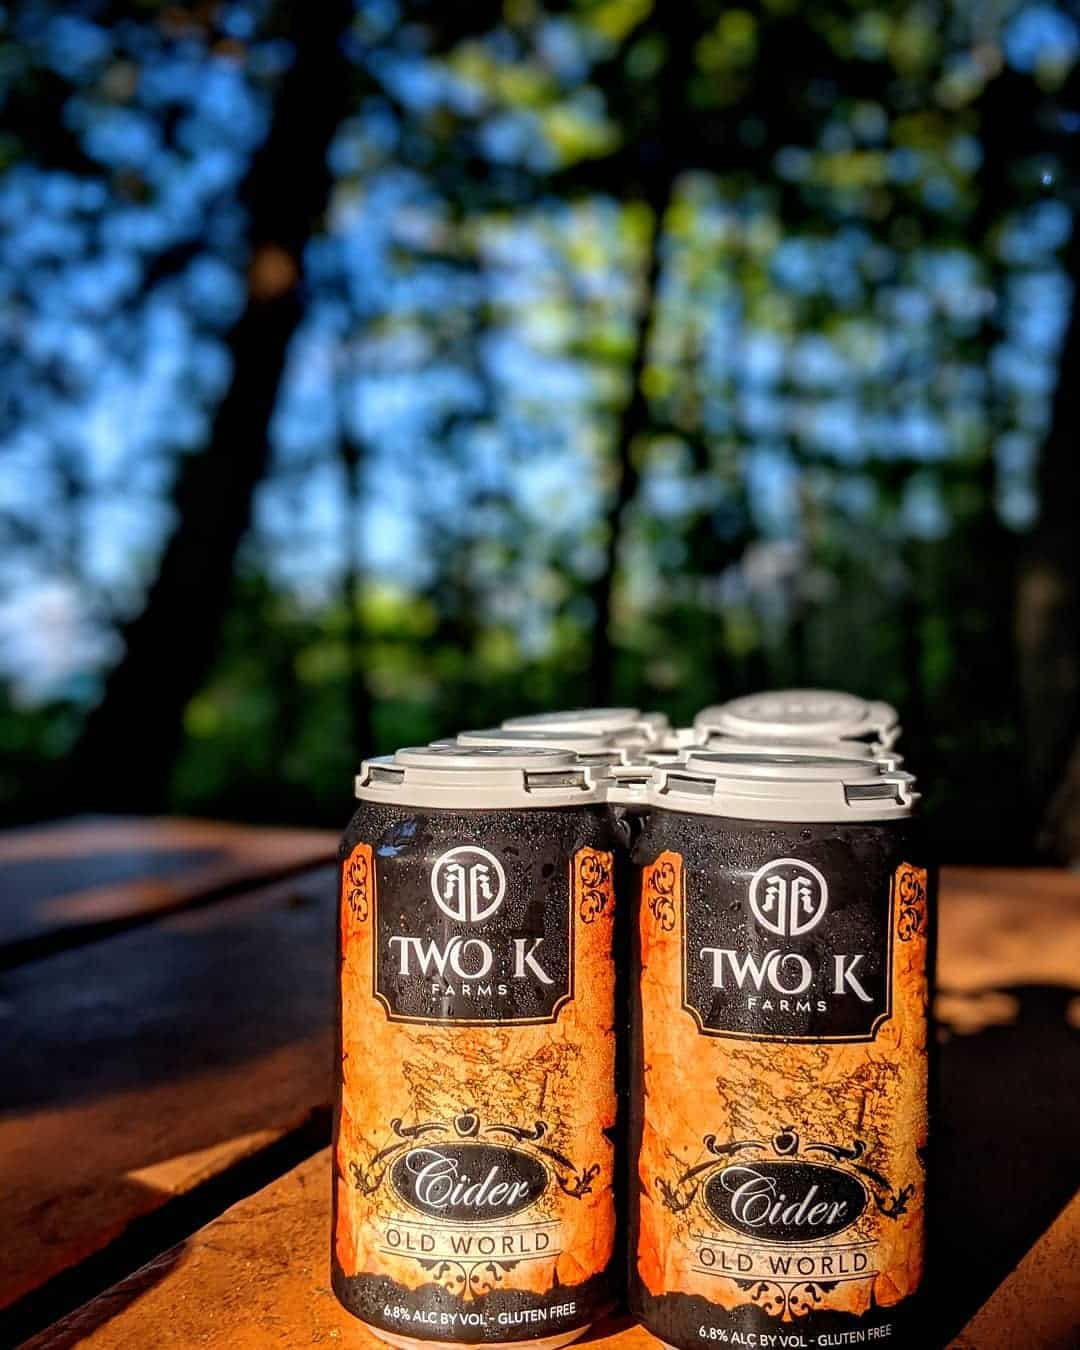 Old World Cider from Two K Farms in Suttons Bay.